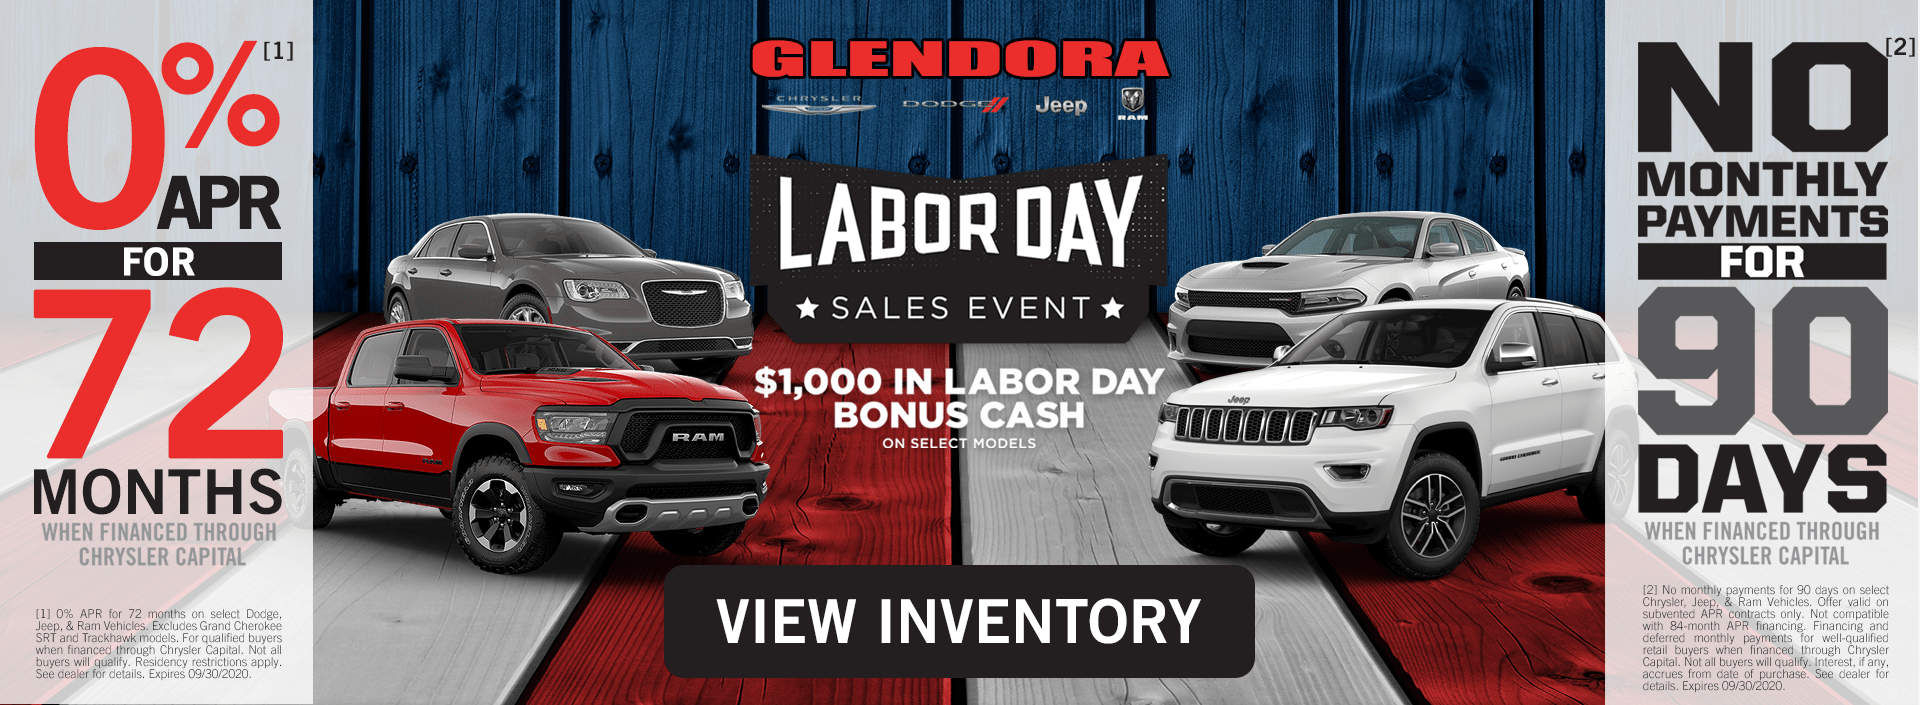 Labor Day Deals - Labor Day Sales